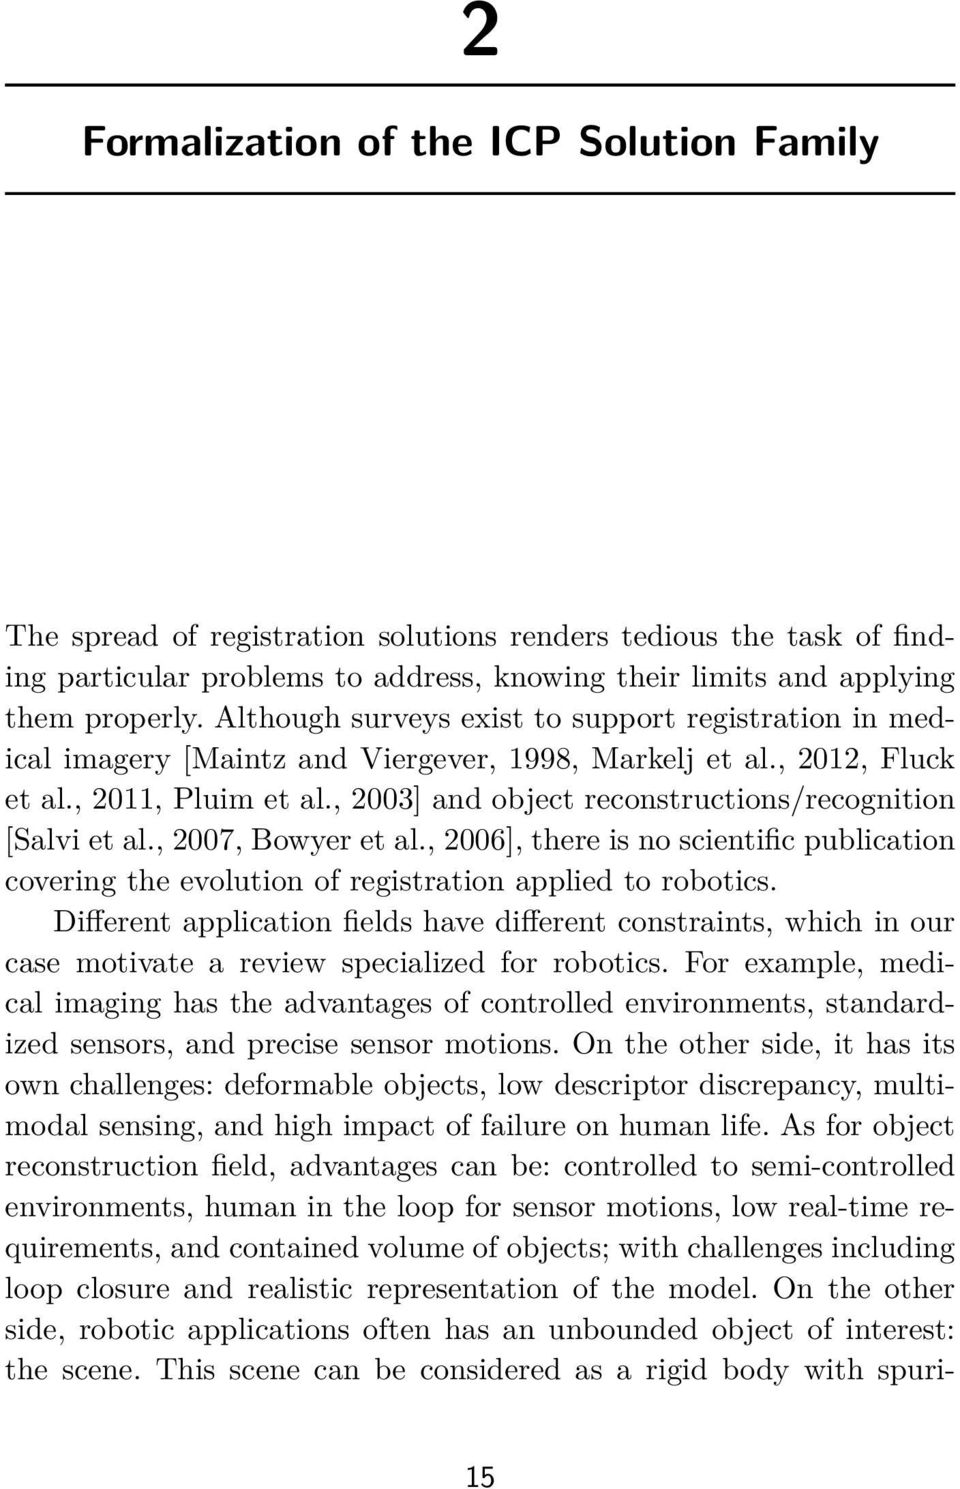 , 2003] and object reconstructions/recognition [Salvi et al., 2007, Bowyer et al., 2006], there is no scientific publication covering the evolution of registration applied to robotics.